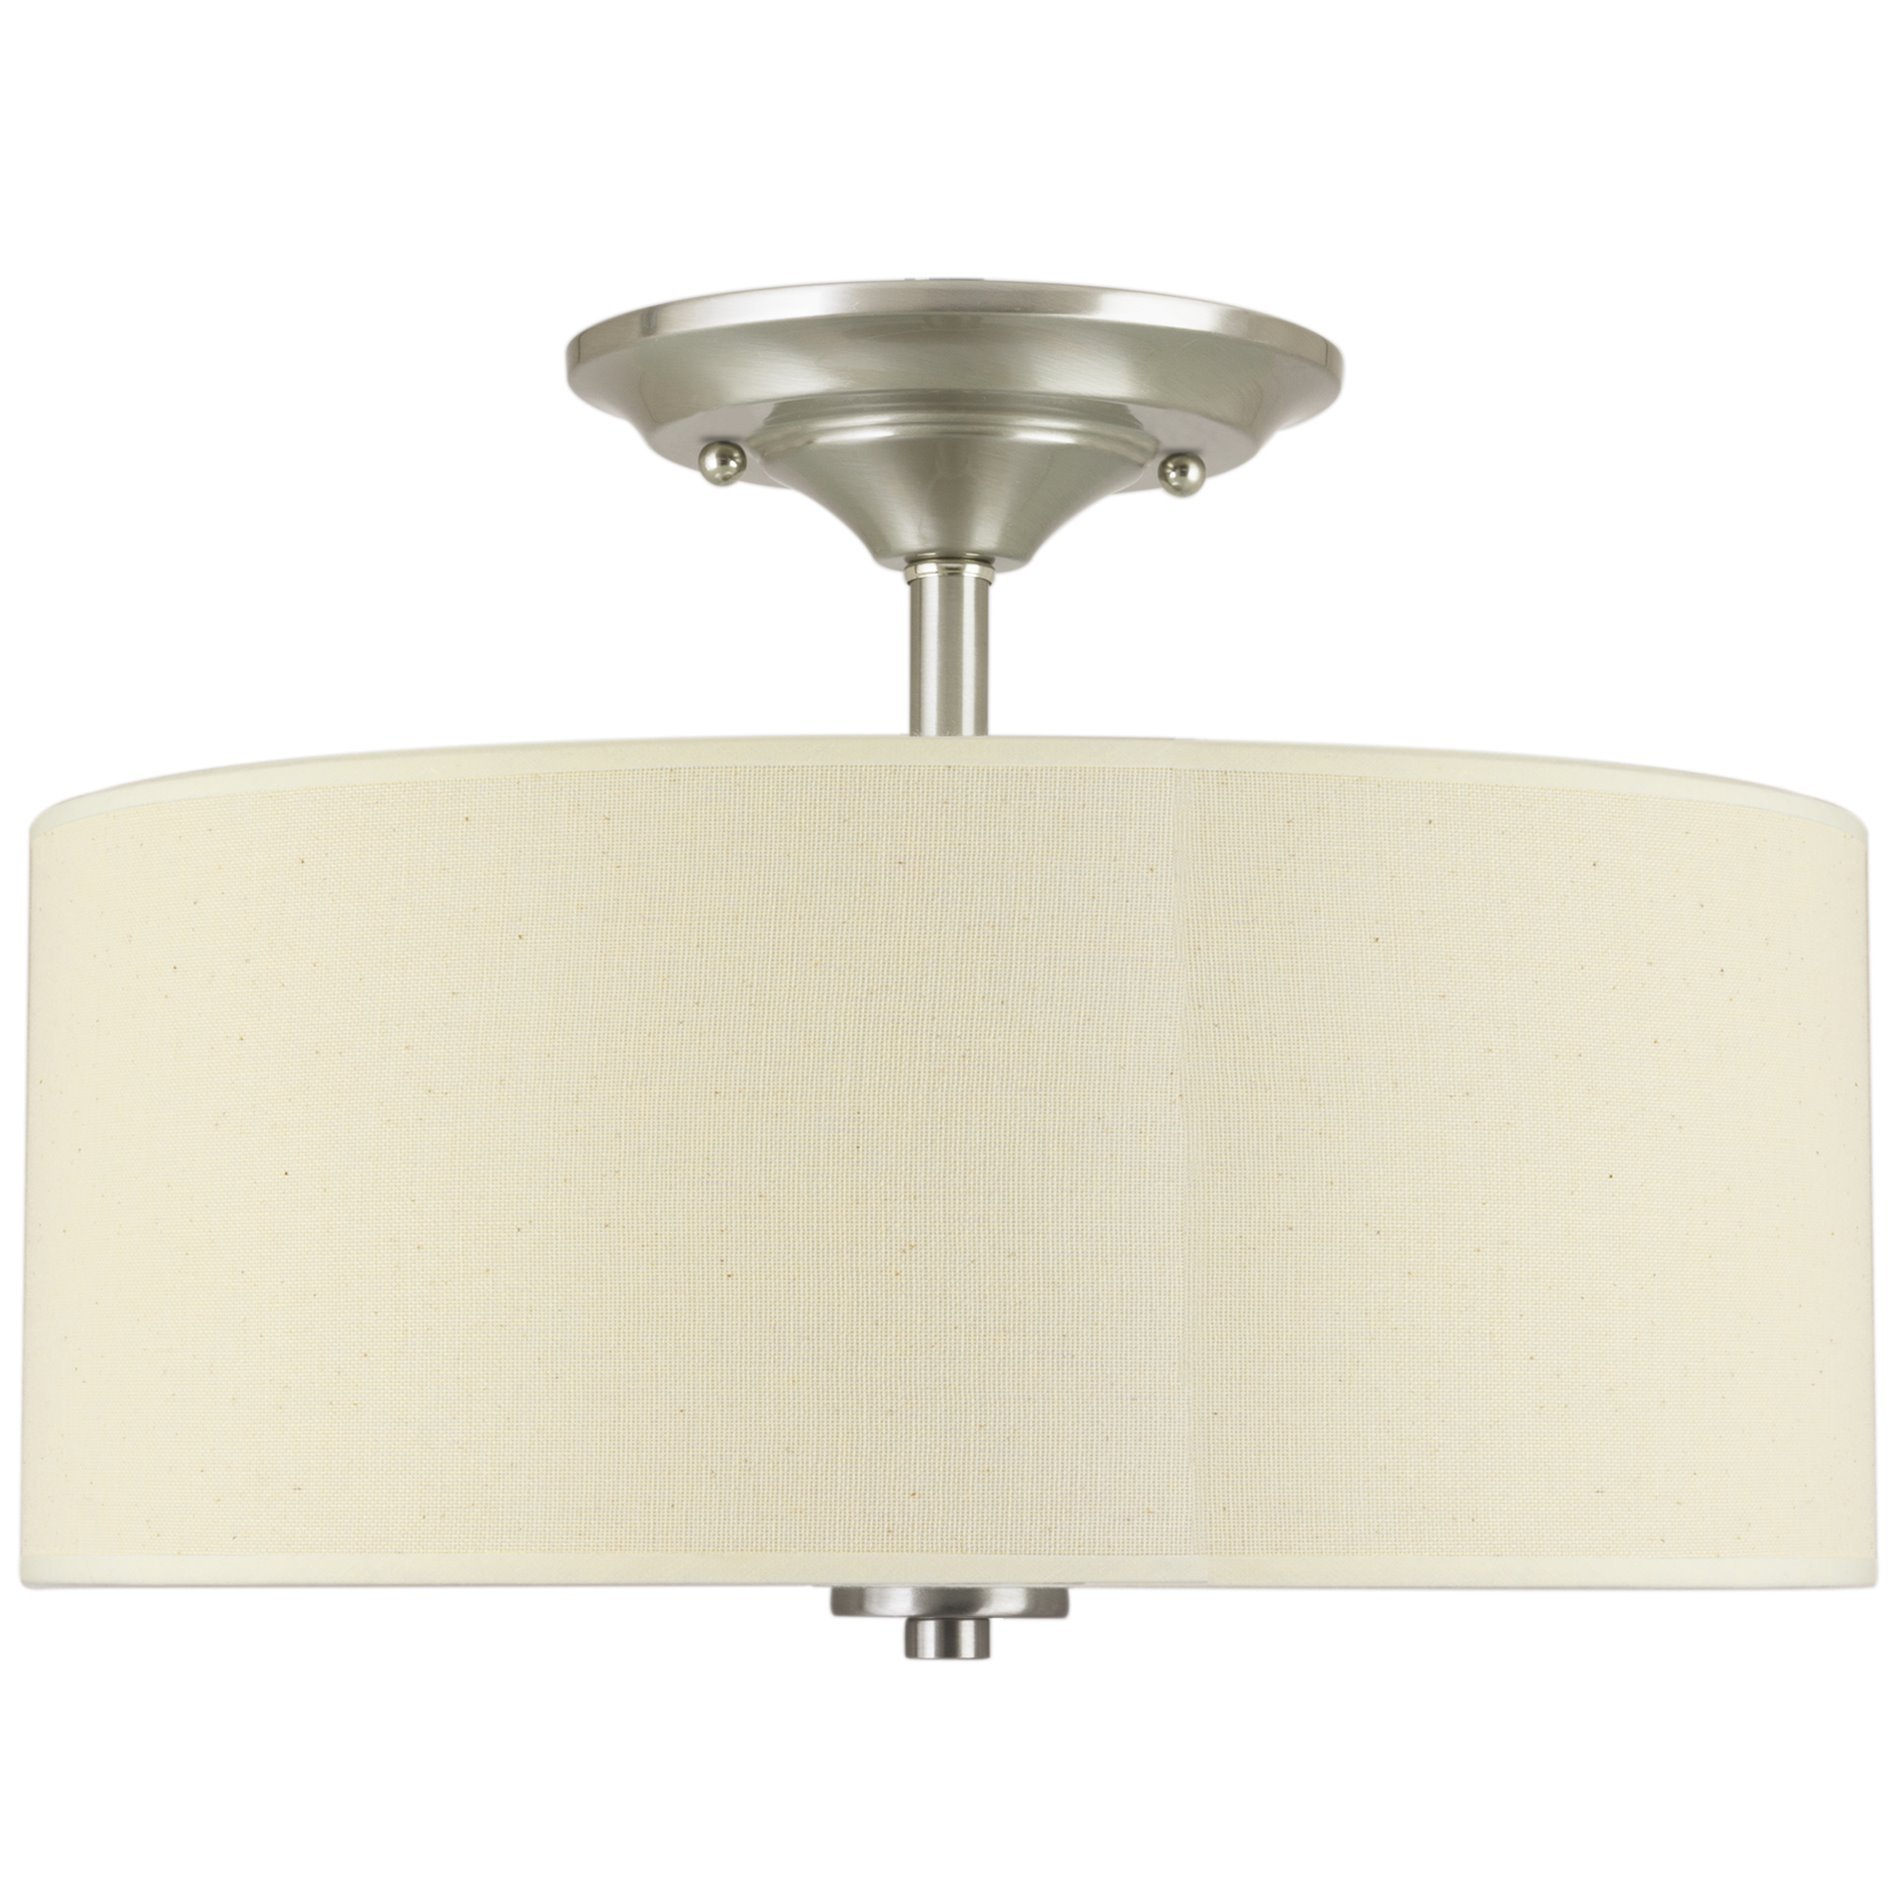 13 2 light semi flush mount ceiling light fixture w off white colorbrushed nickel glass diffuser the addison 2 light semi flush arubaitofo Image collections